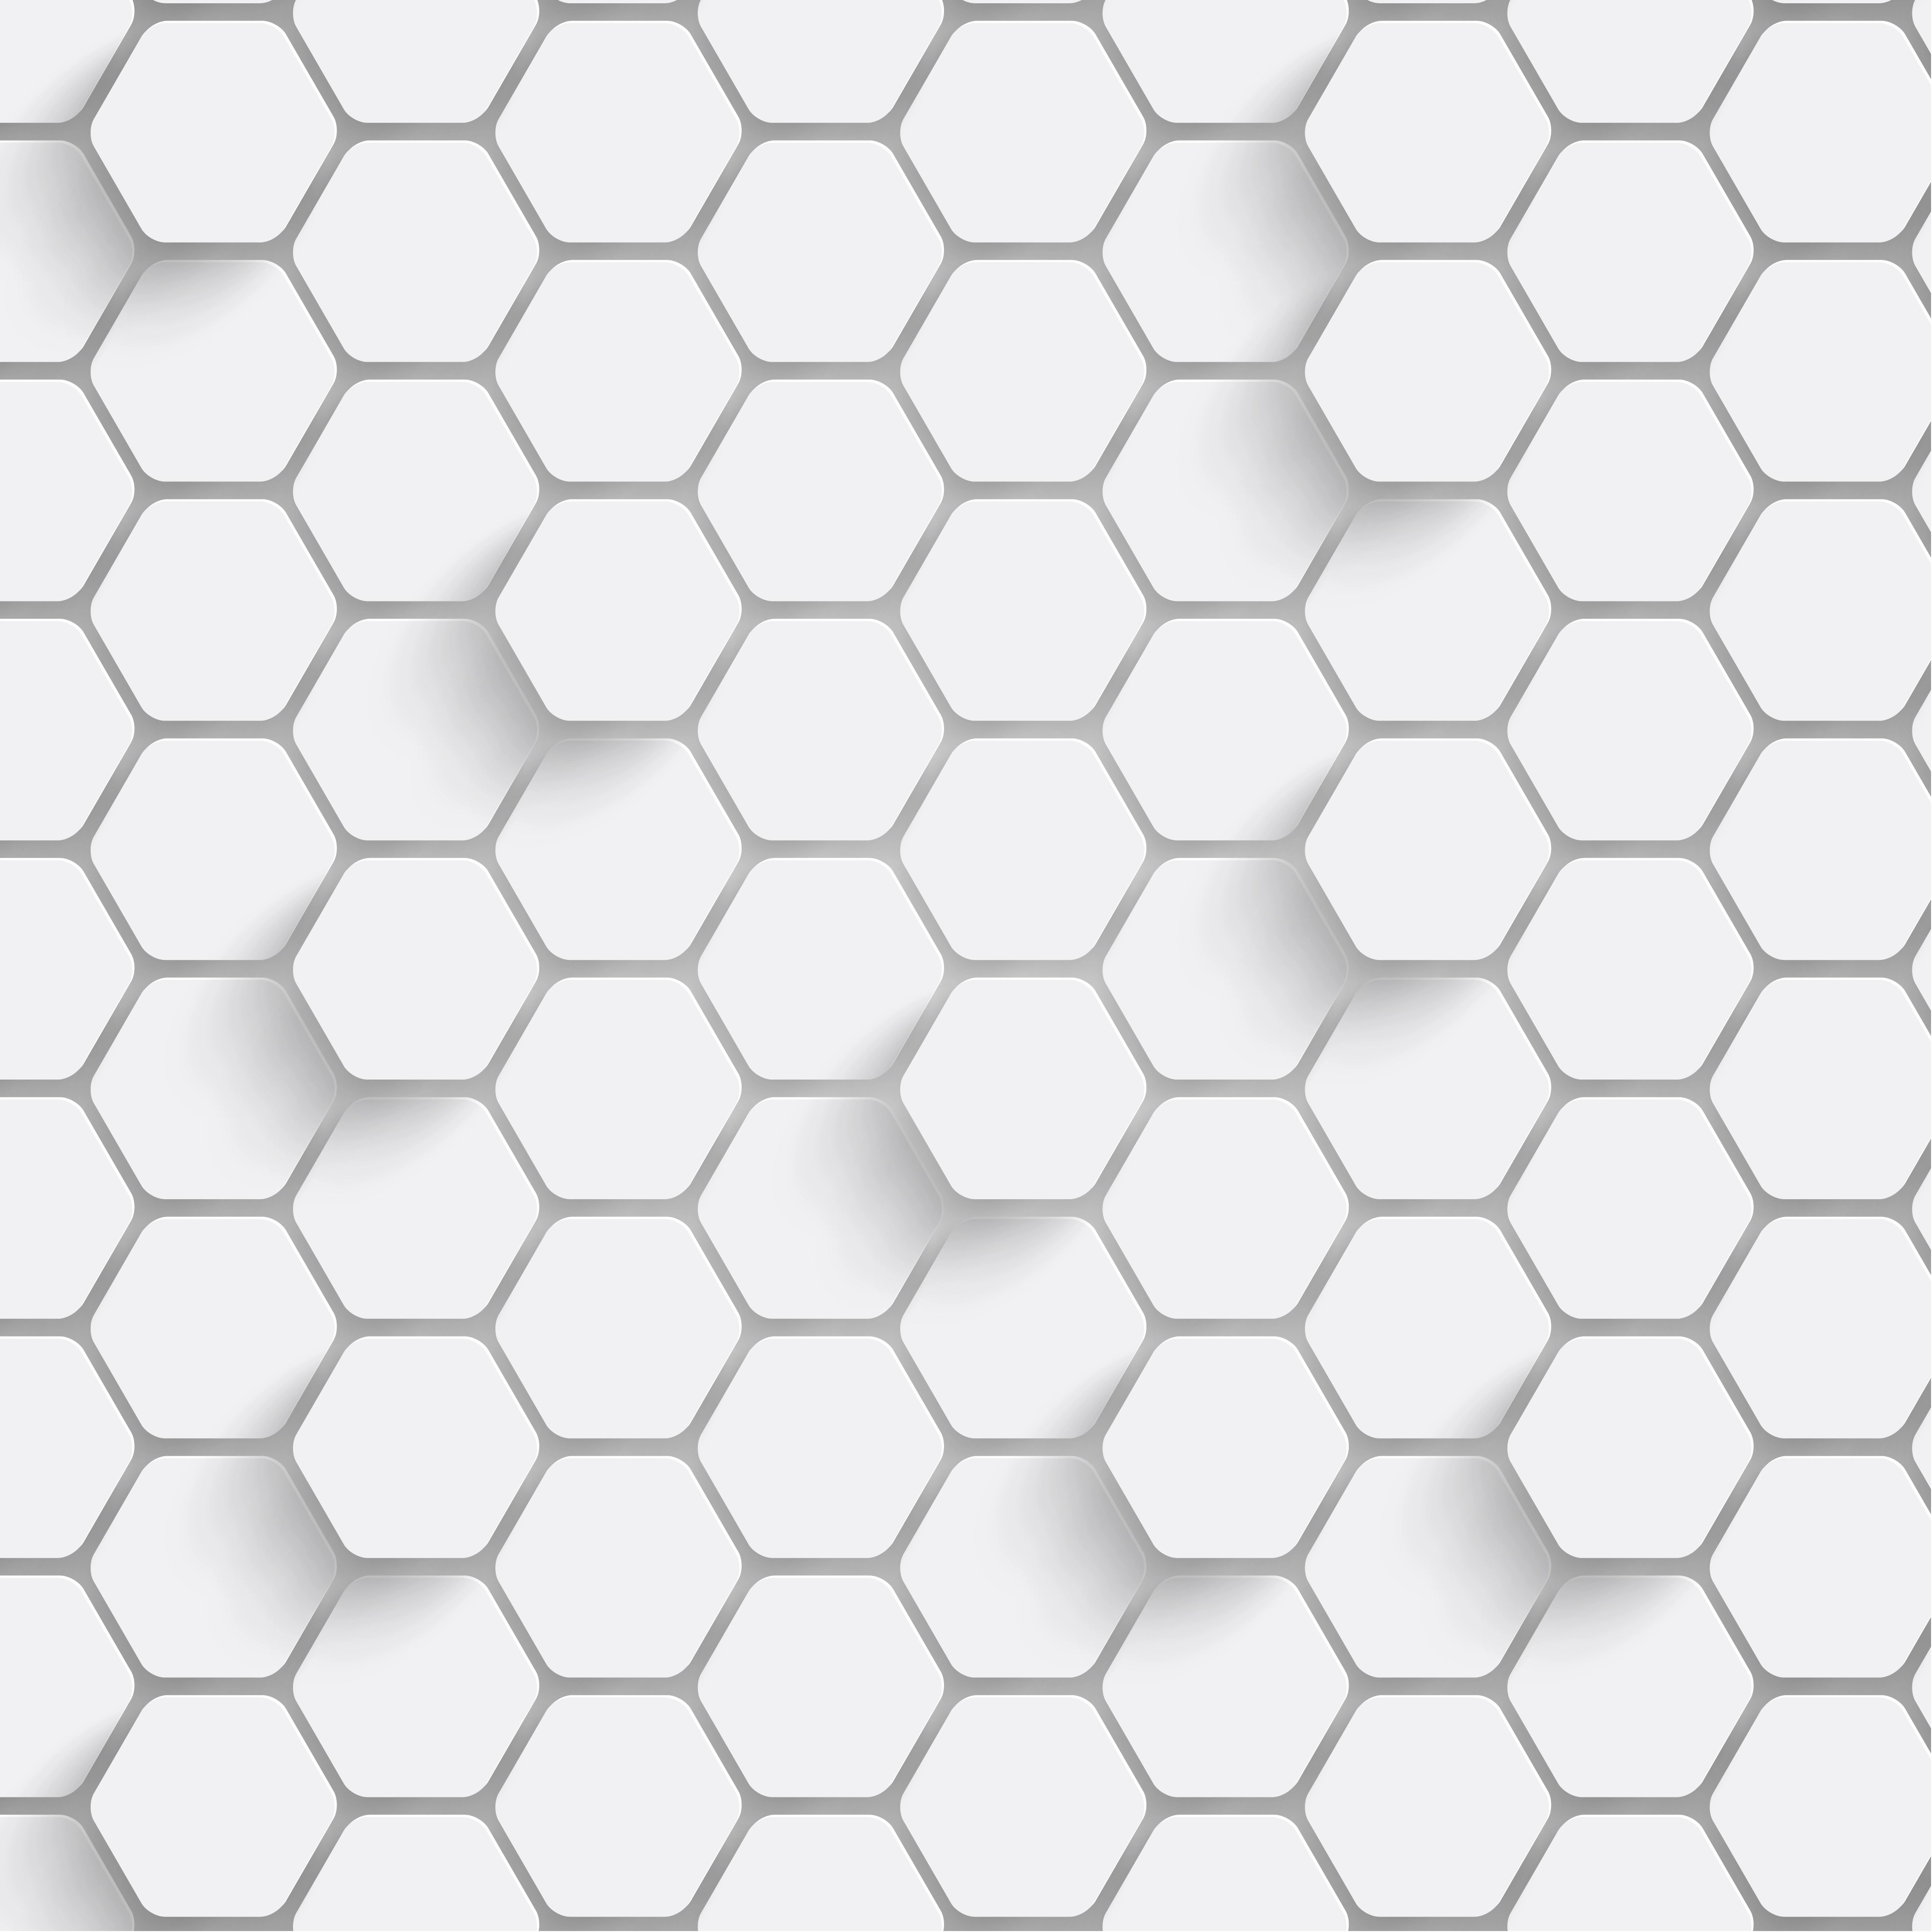 Paper Hexagon Background With Drop Shadows Vector